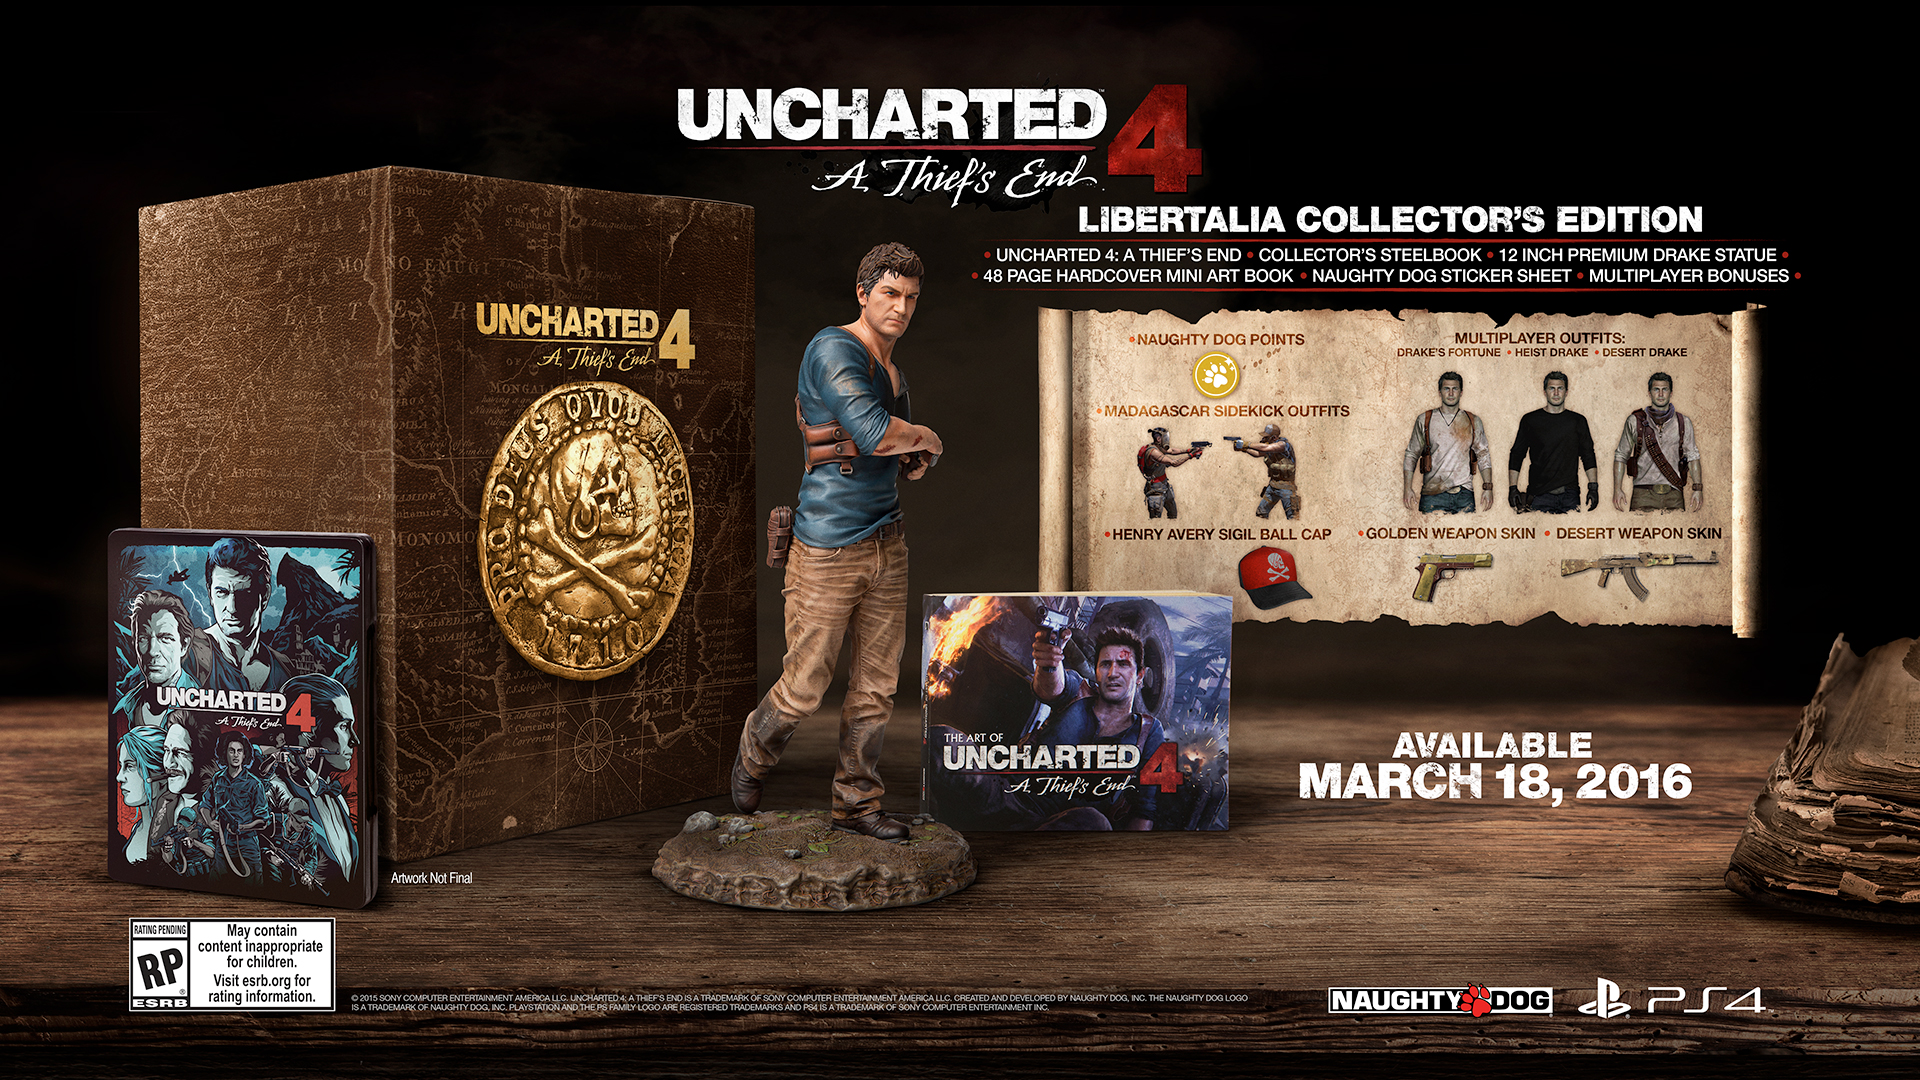 uncharted-4-a-thiefs-end-libertalia-collectors-edition